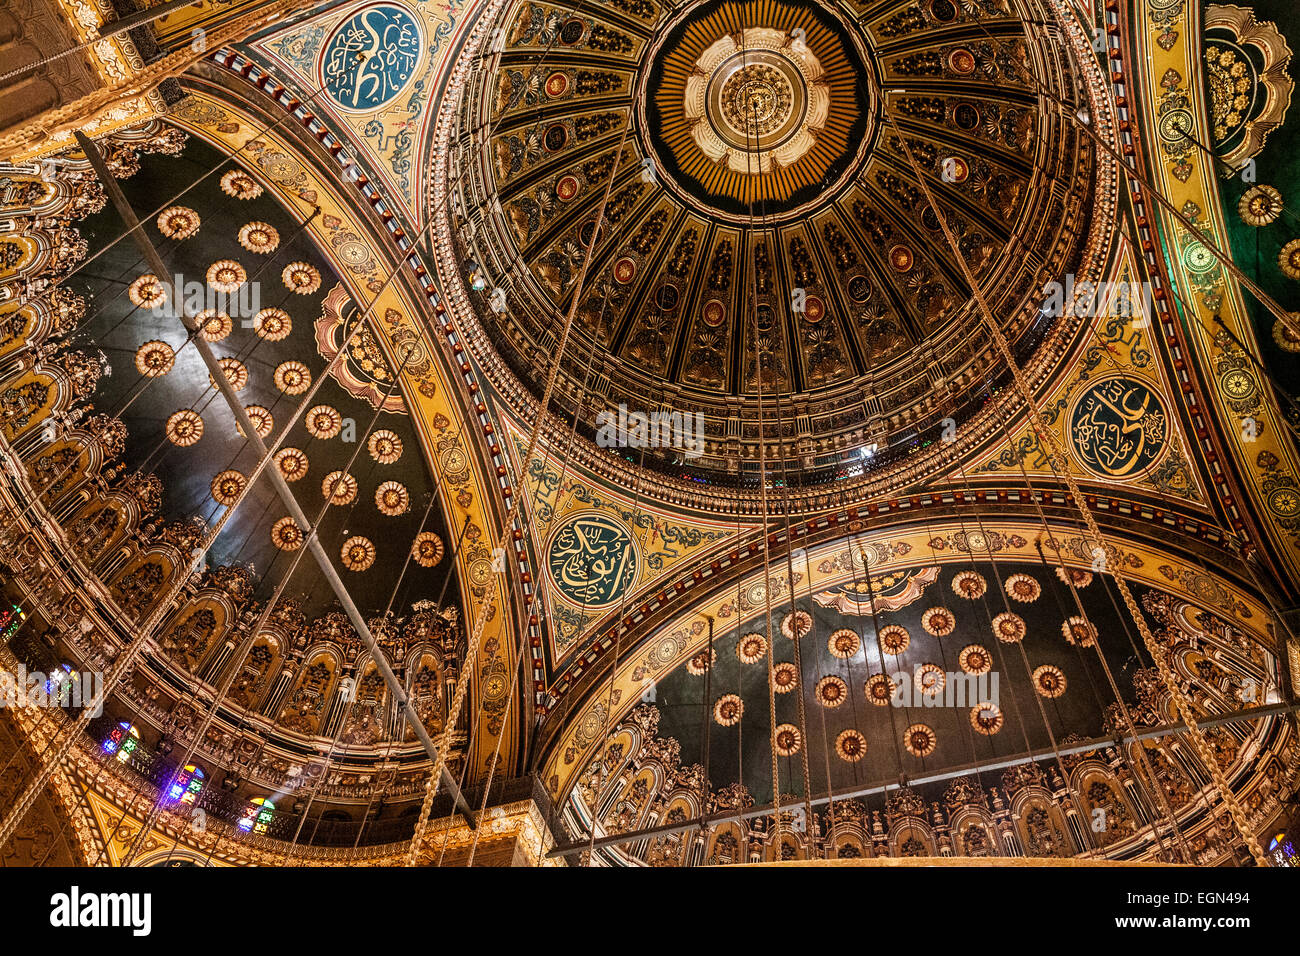 Inside the cupolas of the great Mosque of Muhammad Ali Pasha or Citadel Mosque in Cairo. - Stock Image